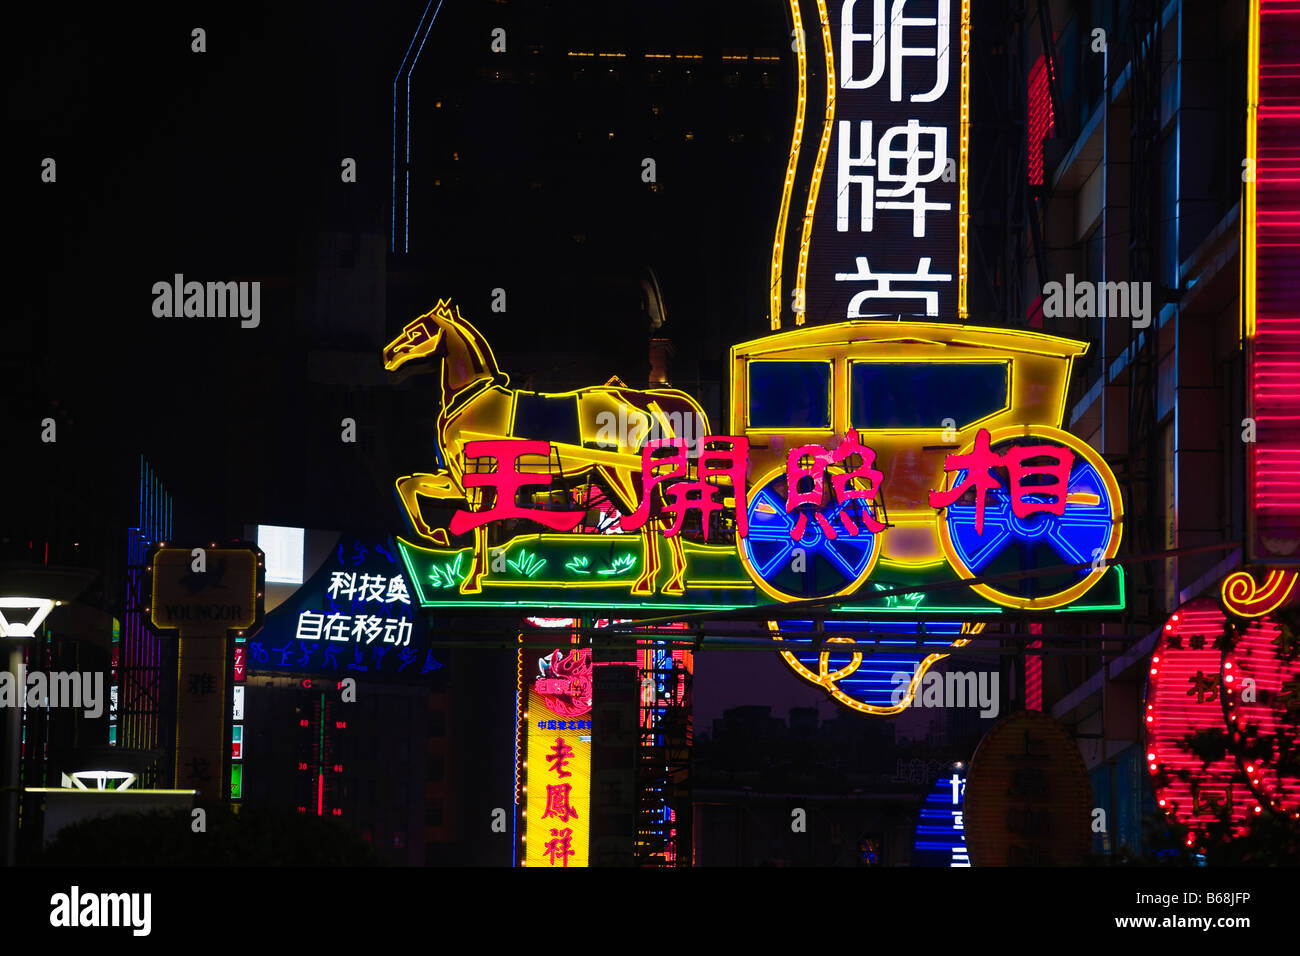 Commercial signs lit up at night, Nanjing Road, Shanghai, China - Stock Image